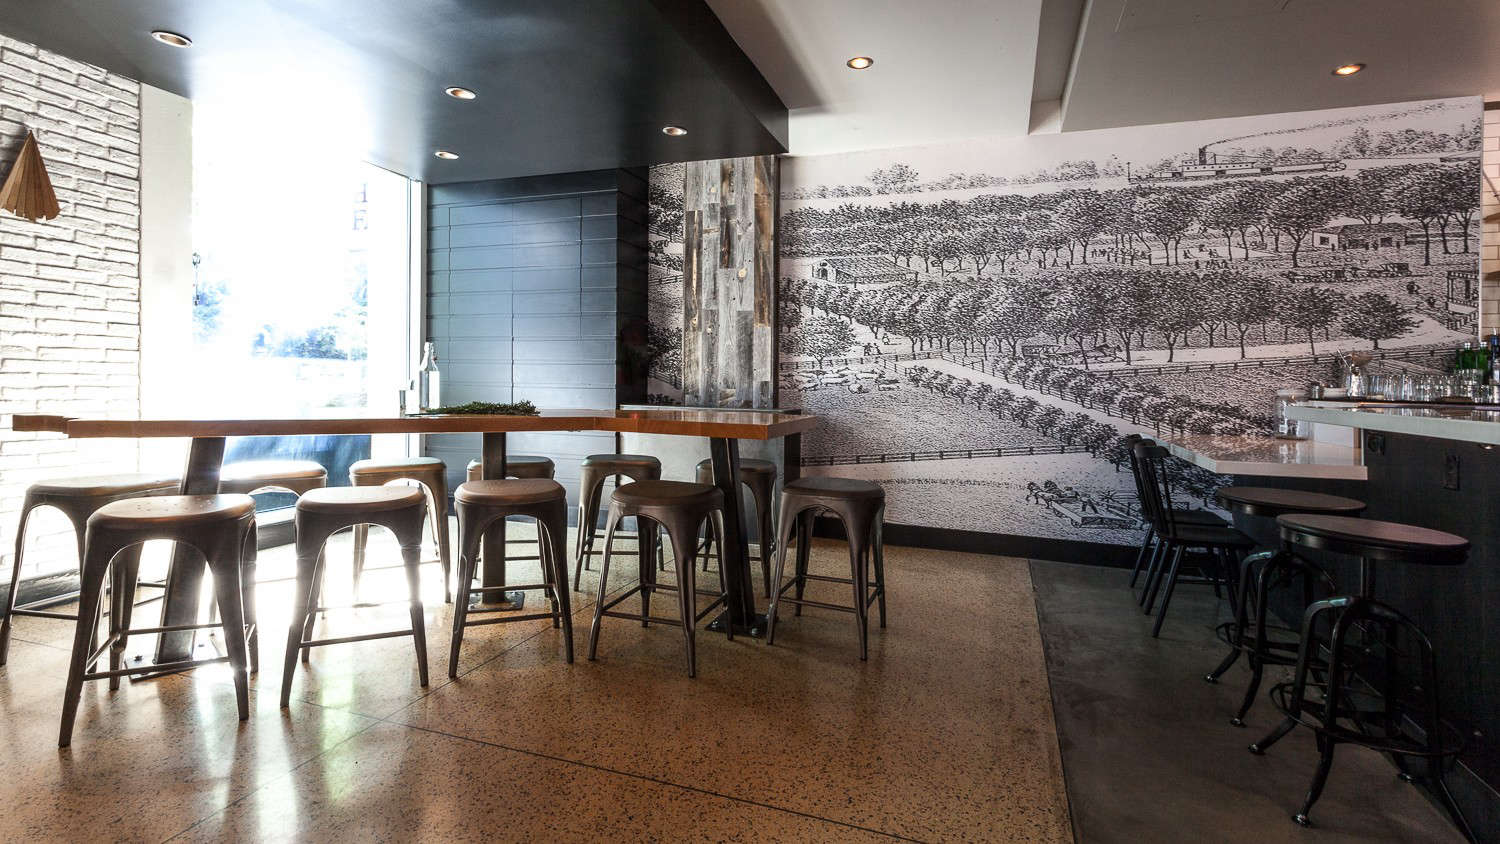 Hock Farm Restaurant with Metal Stools and Black and White Wallpaper